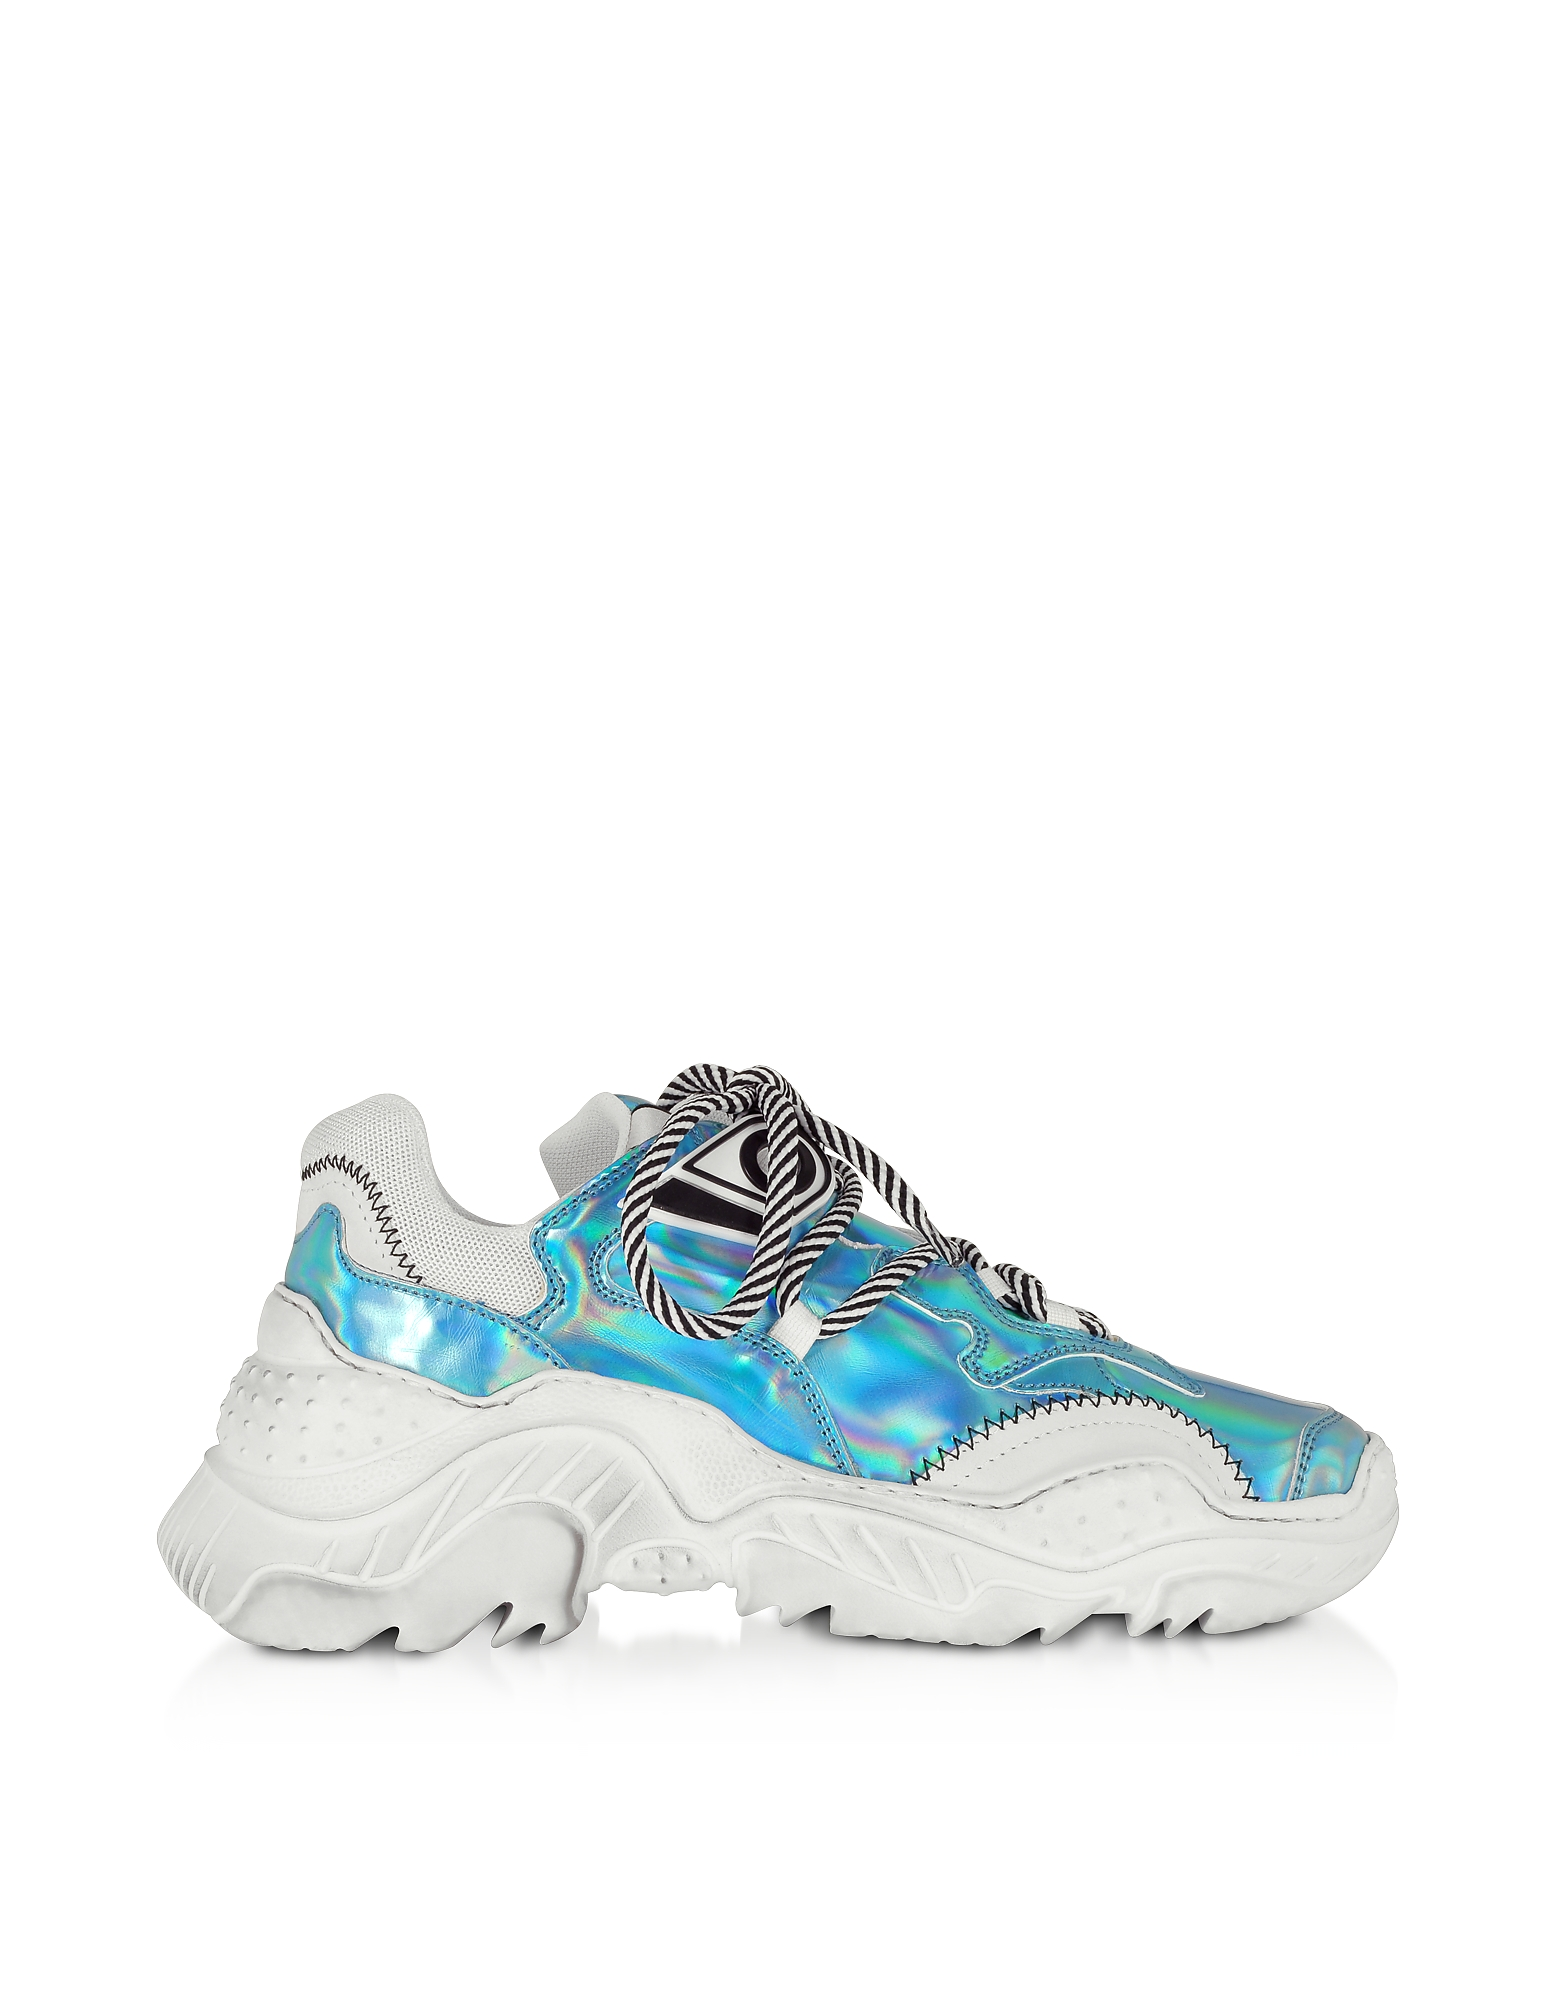 N°21 Sneakers BILLY HOLOGRAPHIC EFFECT WOMEN'S SNEAKERS